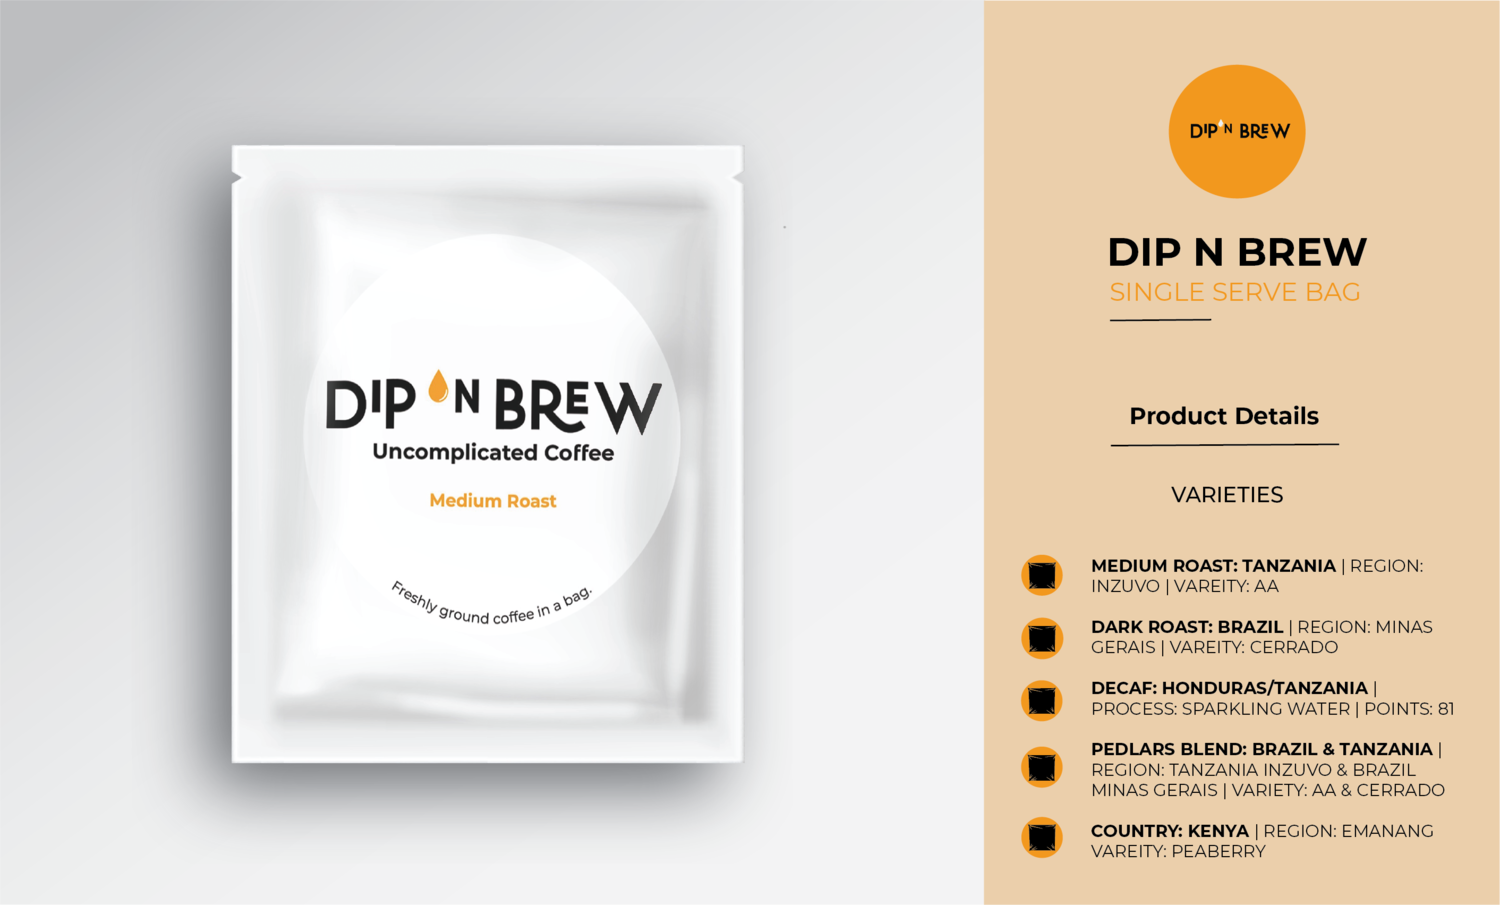 DIP N BREW - SINGLE SERVE BAG